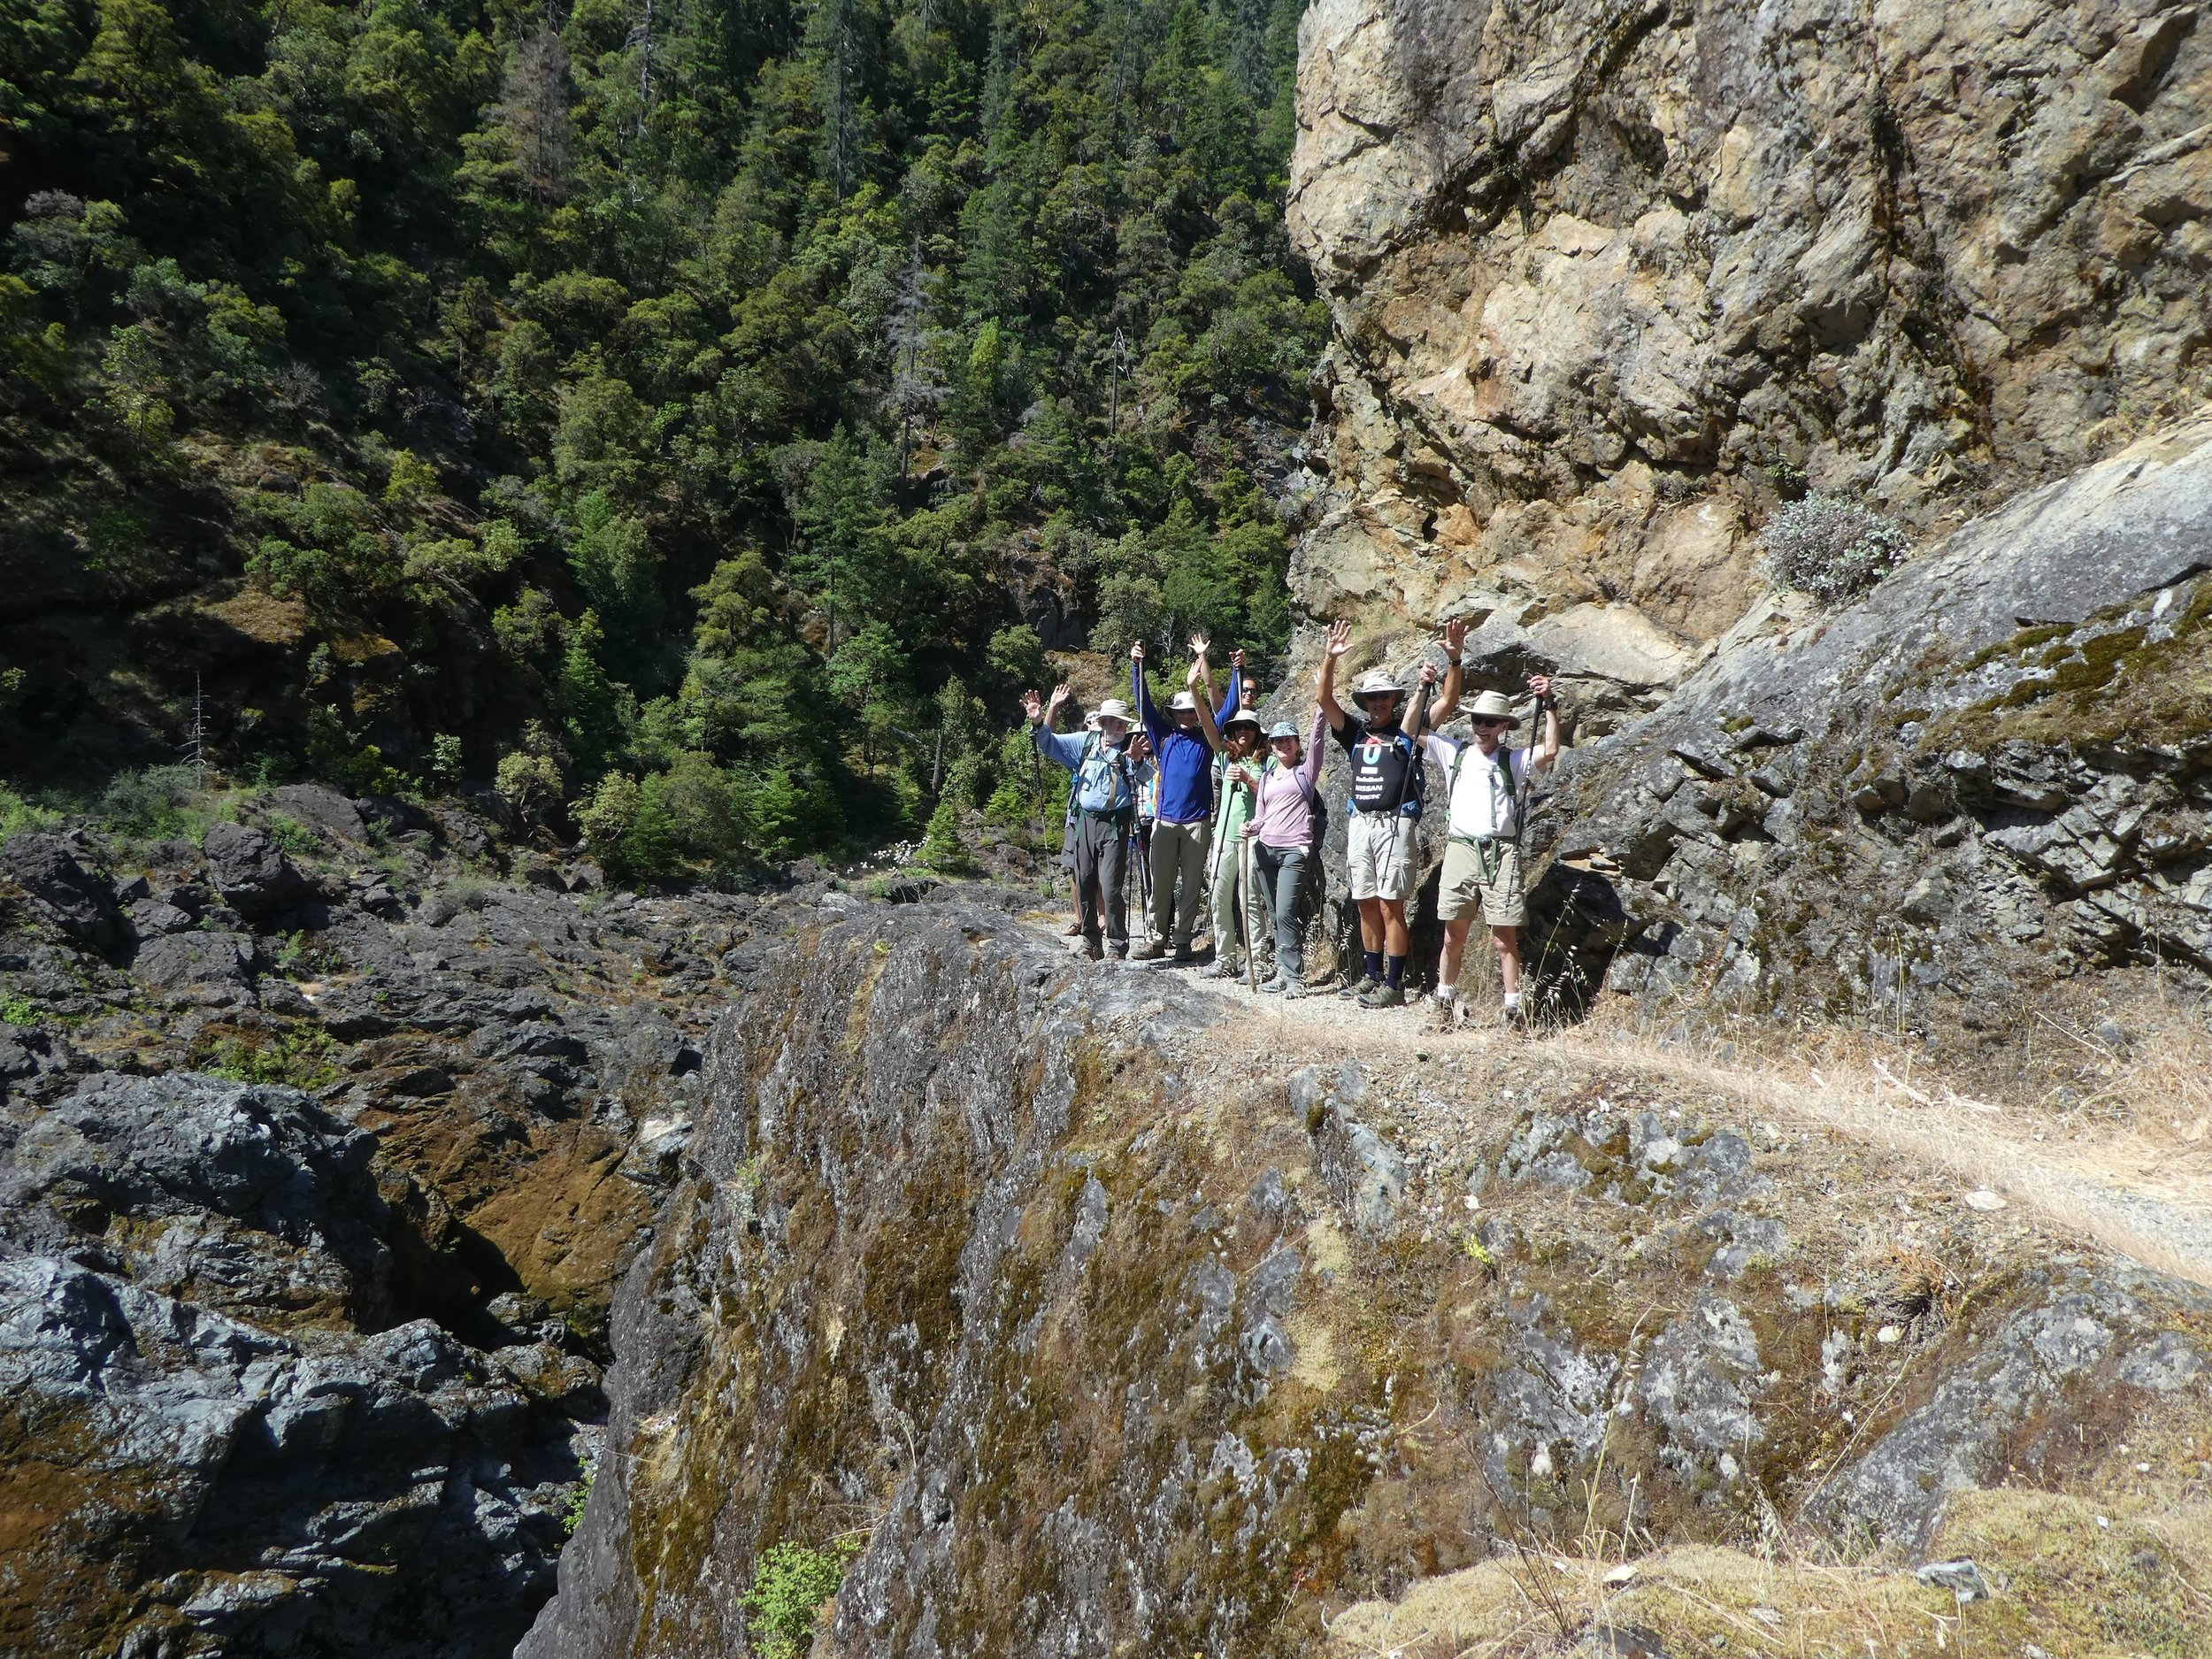 Hike with new friends in spectacular scenery